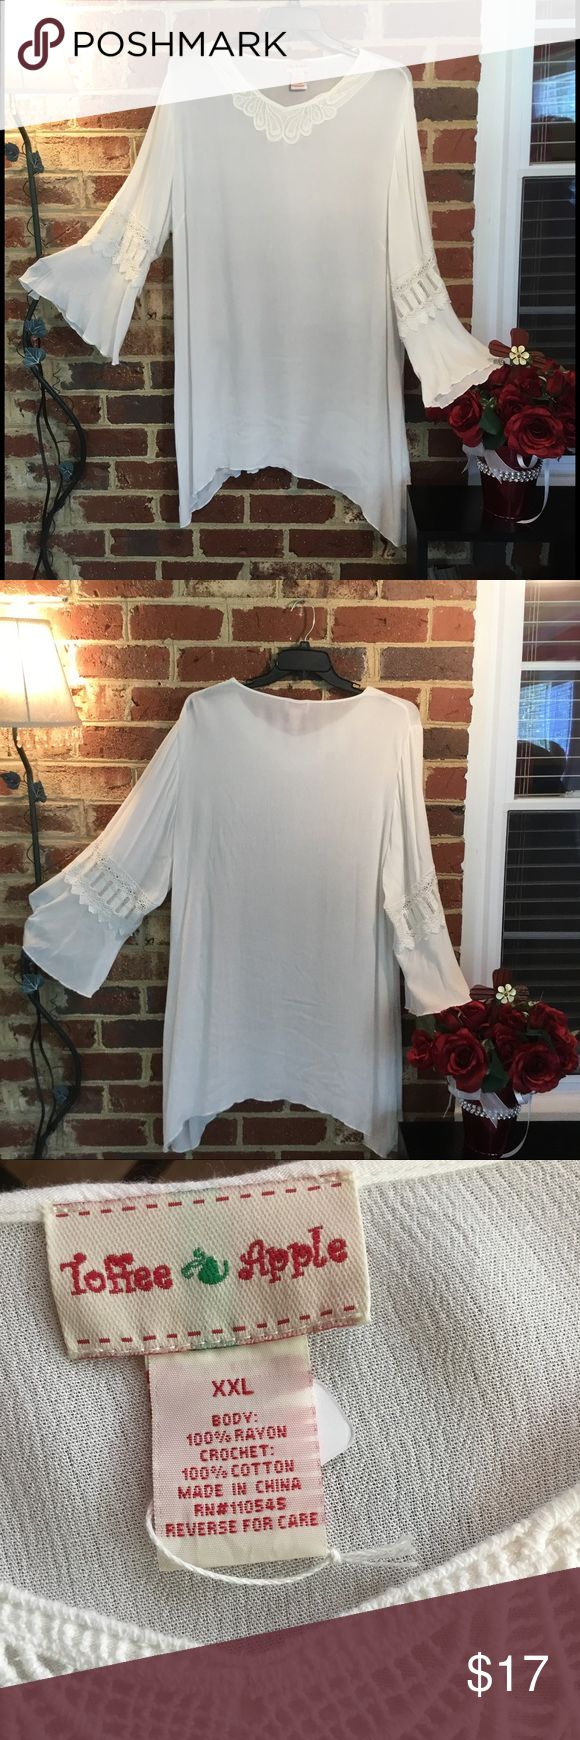 XXL Quality Shark Bite Top with Gorgeous Sleeves This is a beautiful shark bite top with fashionable sleeves.  New, never worn from Cracker Barrell Toffee Apple Tops